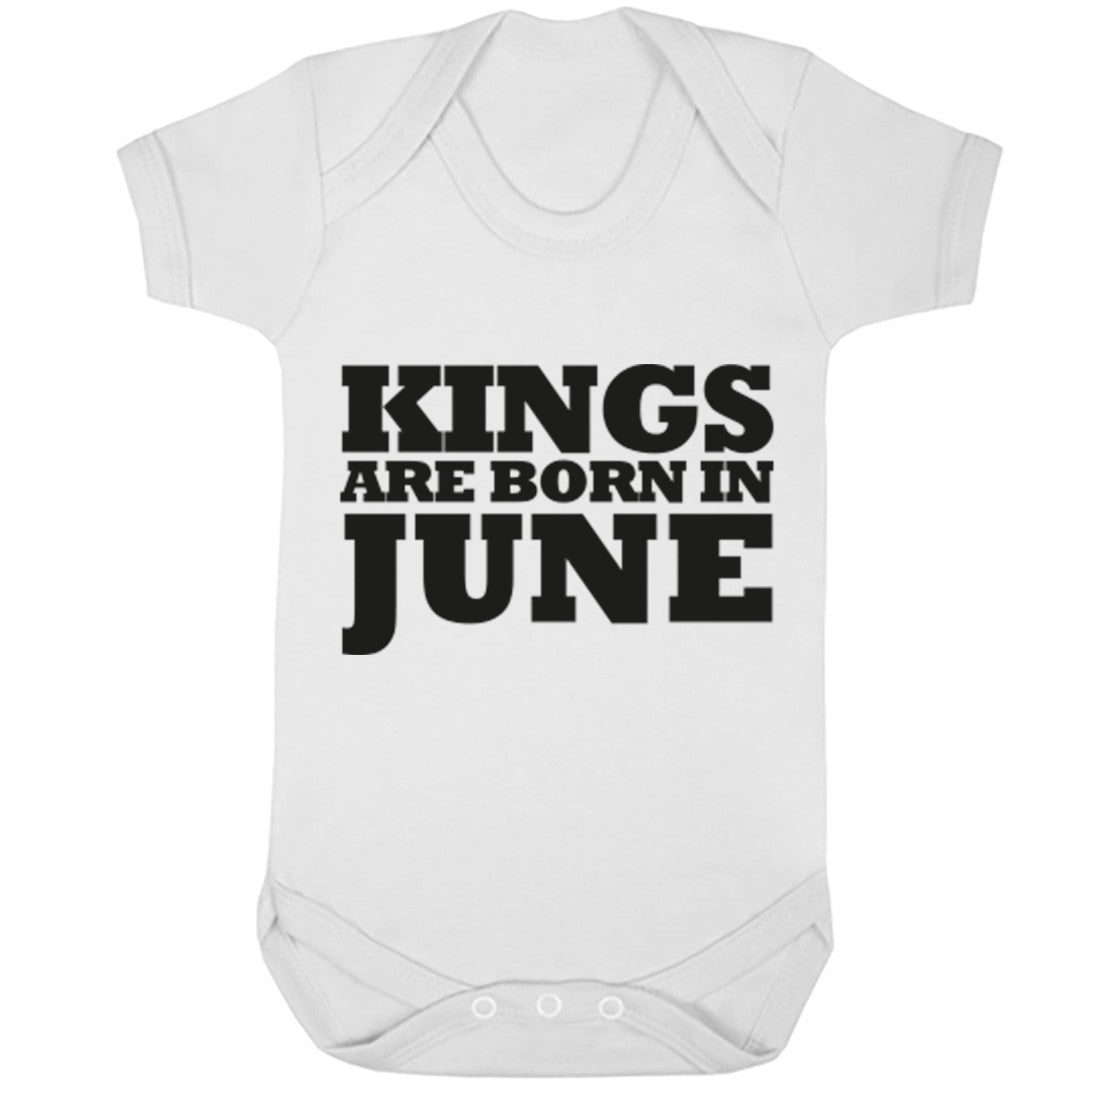 Kings Are Born In June Baby Vest K1689 - Illustrated Identity Ltd.